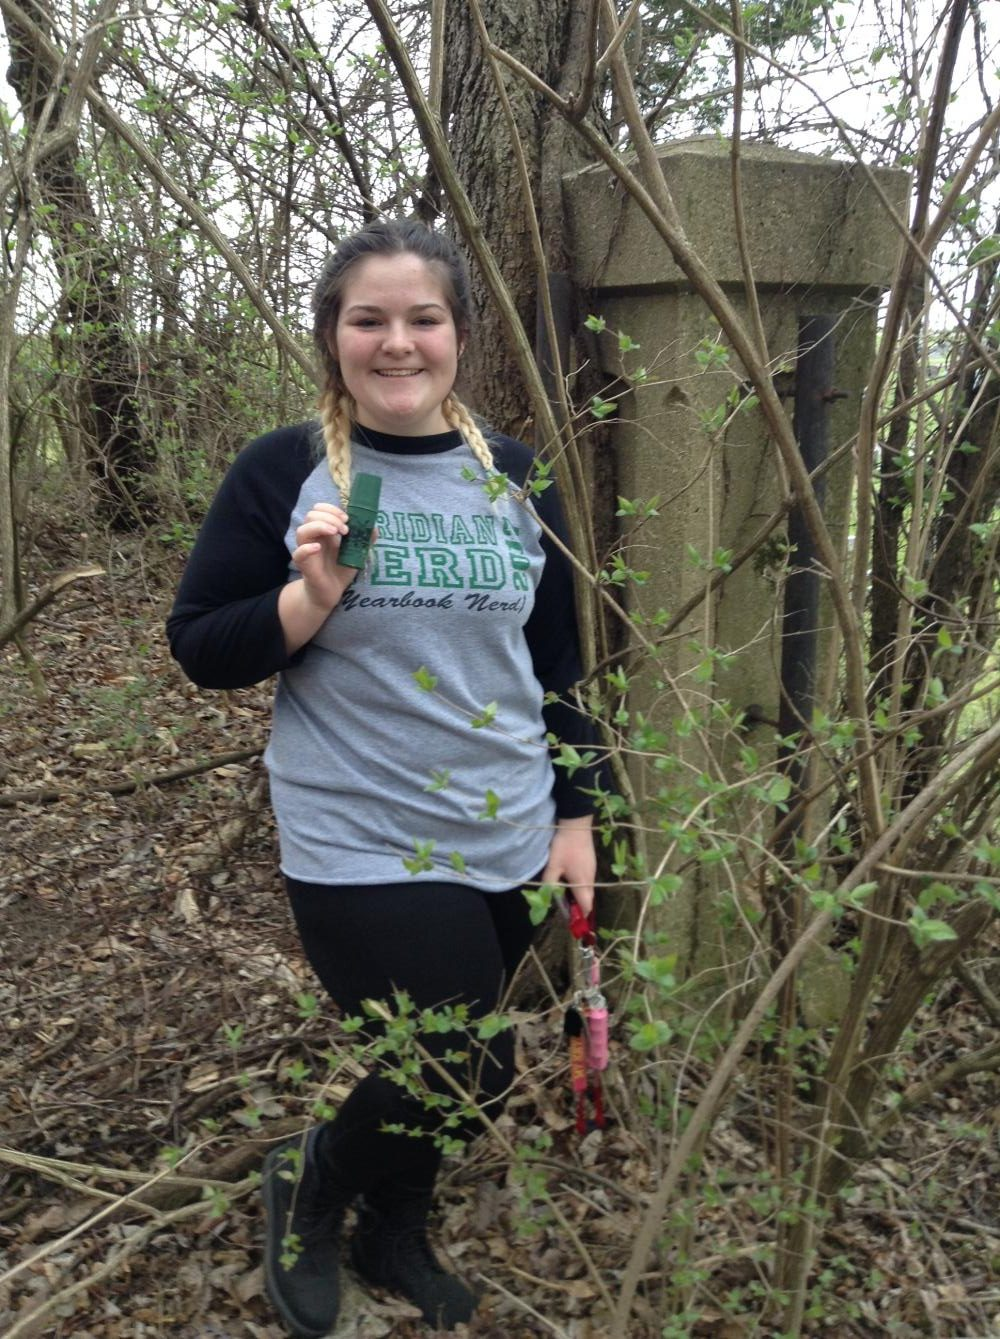 Found it! Sophomore Sydney Moore finding a hidden geocache after a long search.